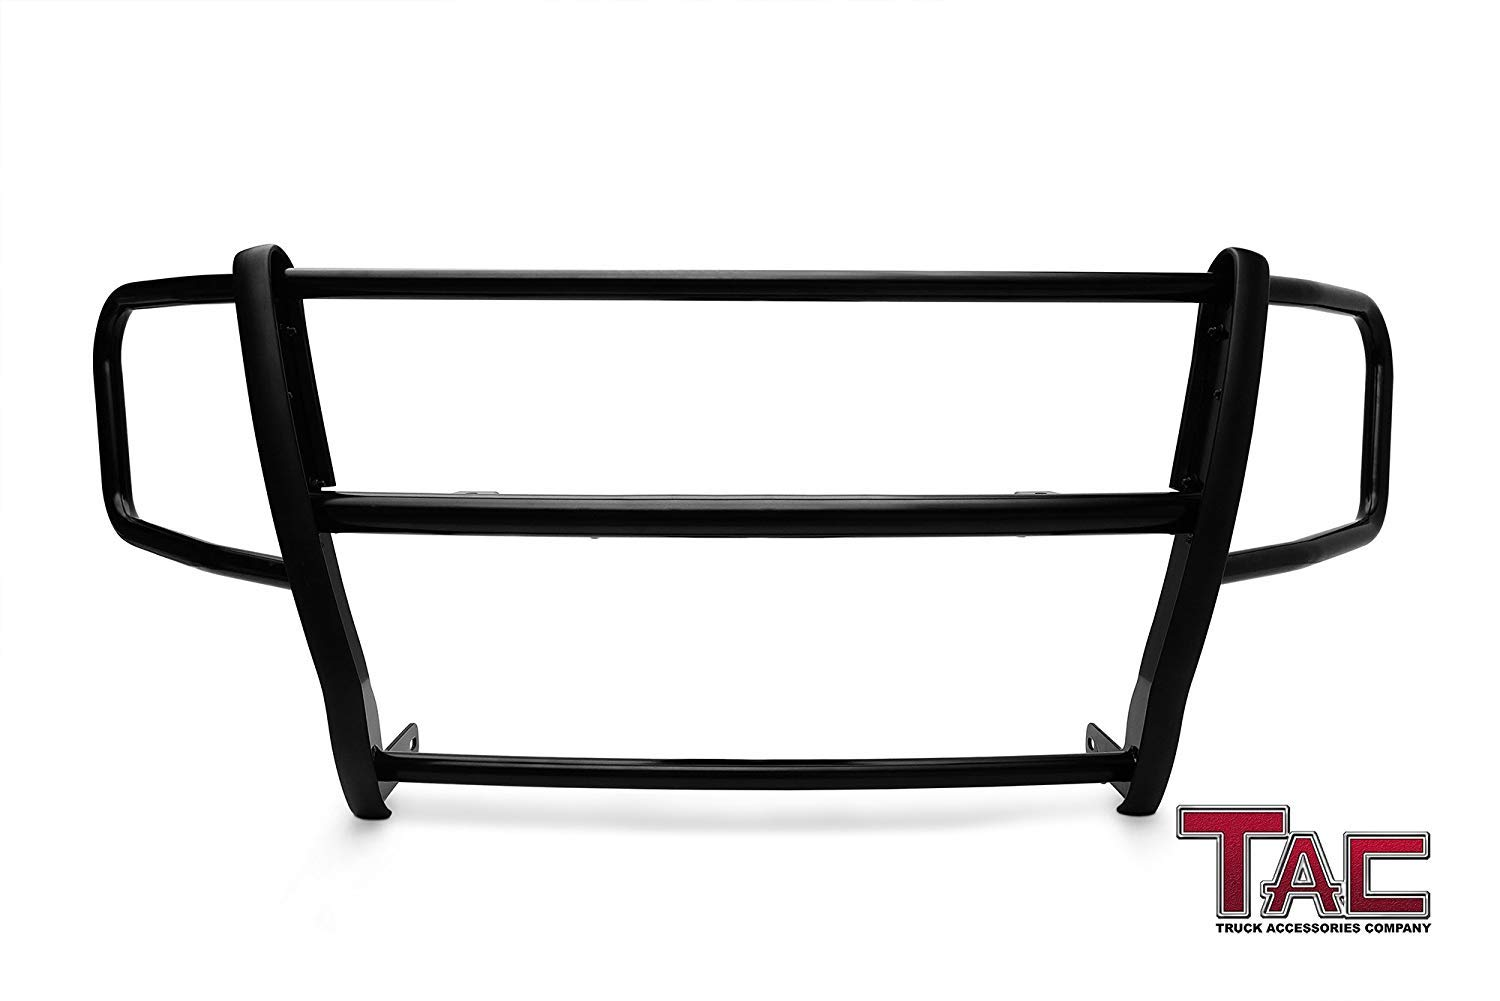 Black Front Runner Guard Brush Nudge Bar Push Bull Bar Bumper Guard Off Road Exterior Accessories TAC Grill Guard Custom Fit 2014-2018 Dodge Ram Pro-Master Van Full Size